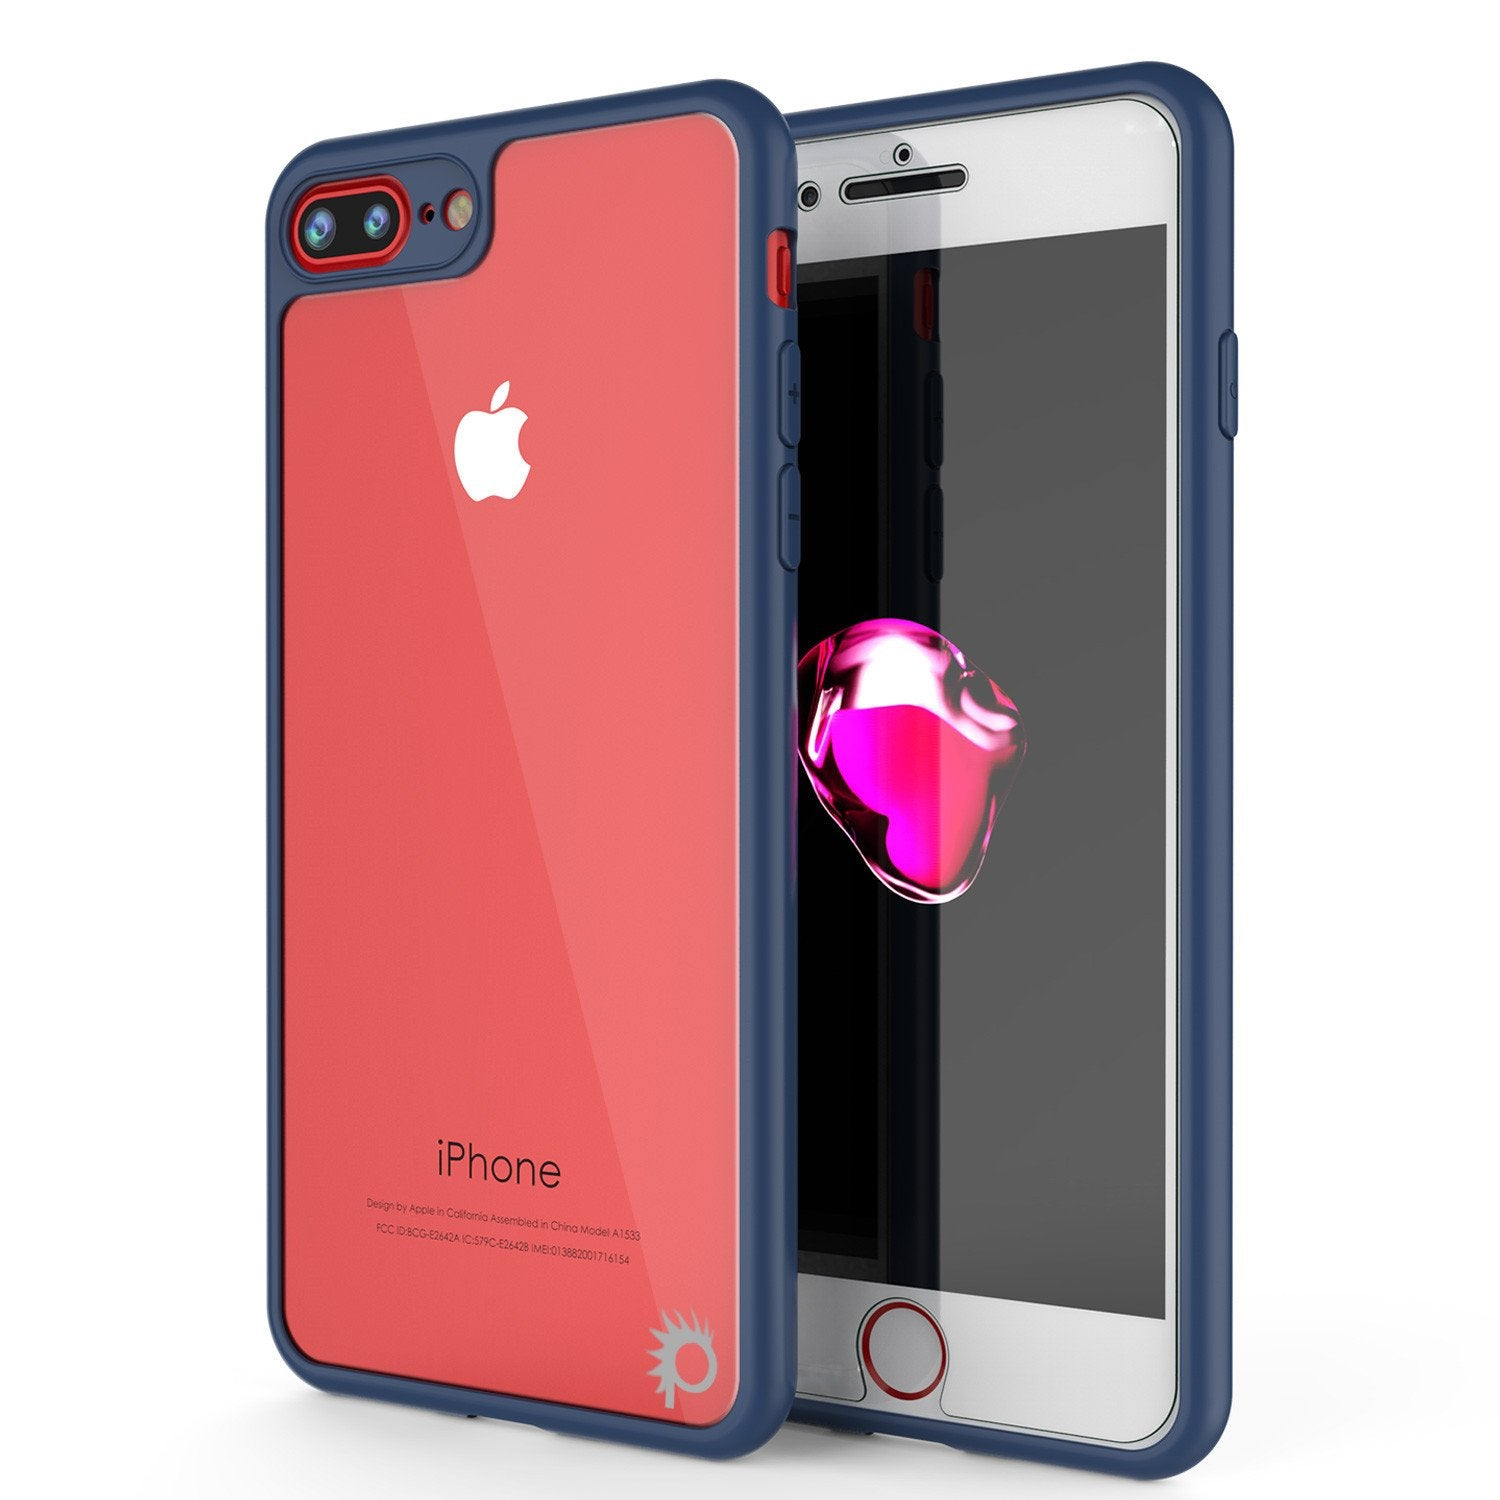 iPhone 7 PLUS Case, Punkcase [MASK Series] [NAVY] Full Body Hybrid Dual Layer TPU Cover [Clear Back] [Non Slip] [Ultra Thin Fit] W/ protective Tempered Glass Screen Protector for Apple iPhone 7s PLUS